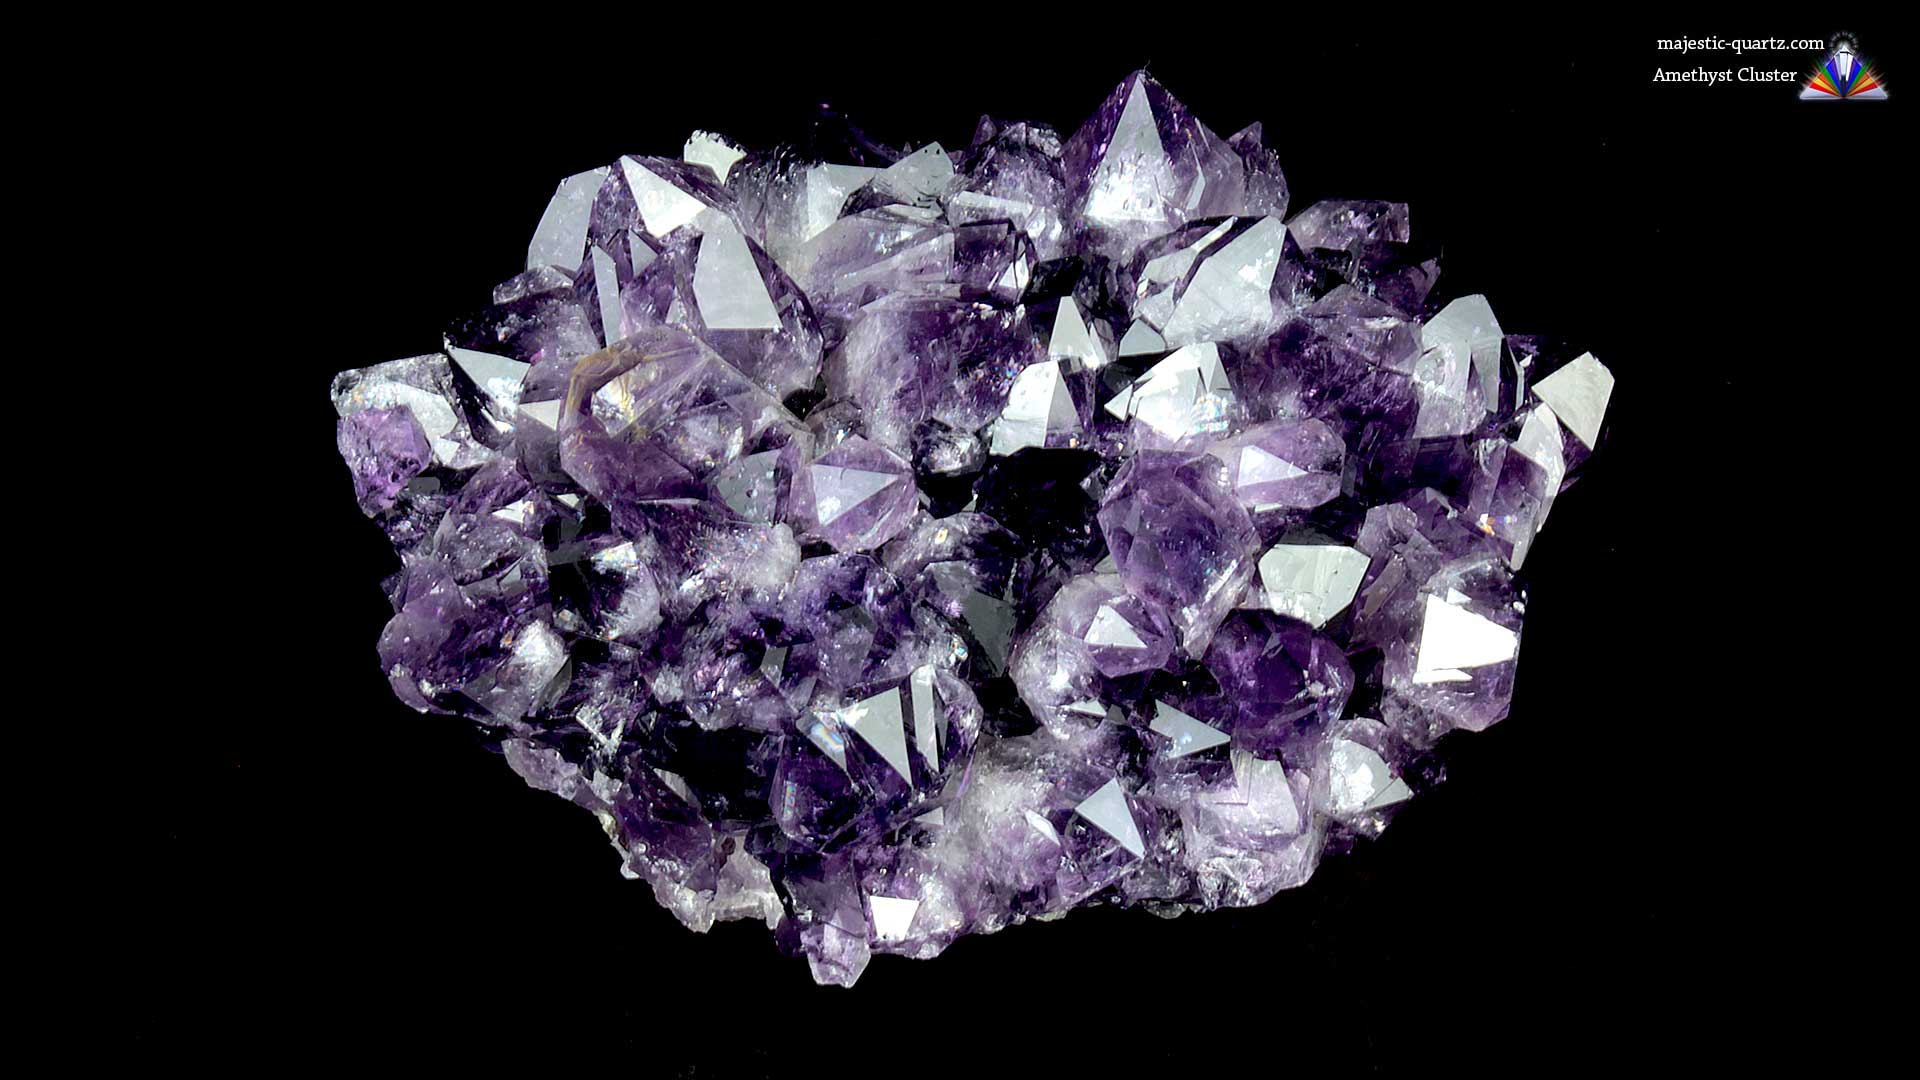 Amethyst Quartz Crystal Cluster - Mineral Specimen Properties and Meaning